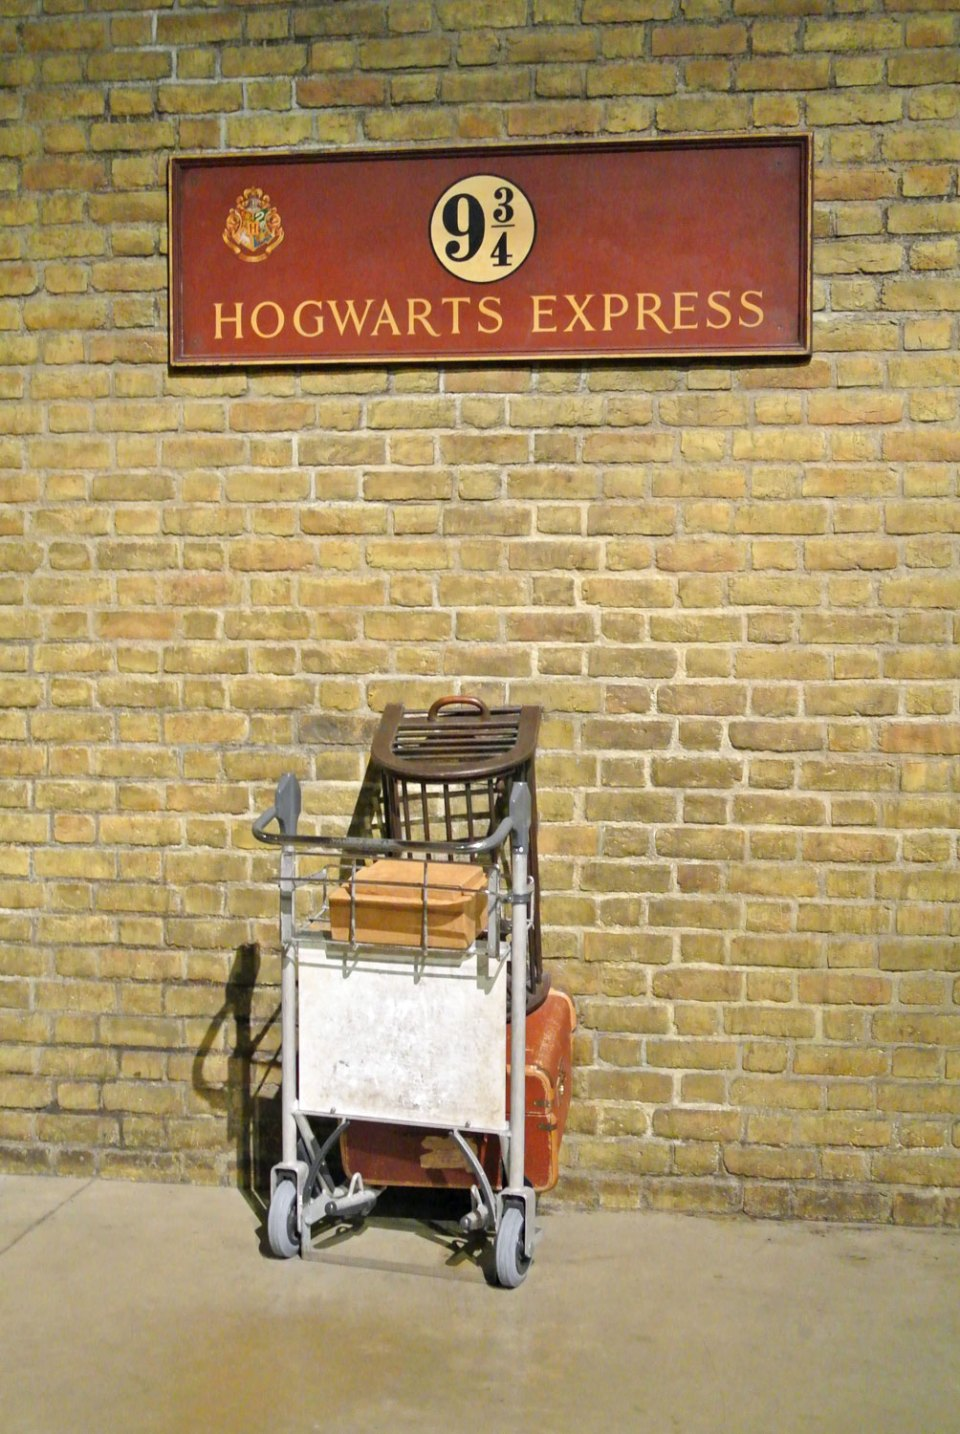 Harry Potter Studio Tour London Gleis 9 3/4